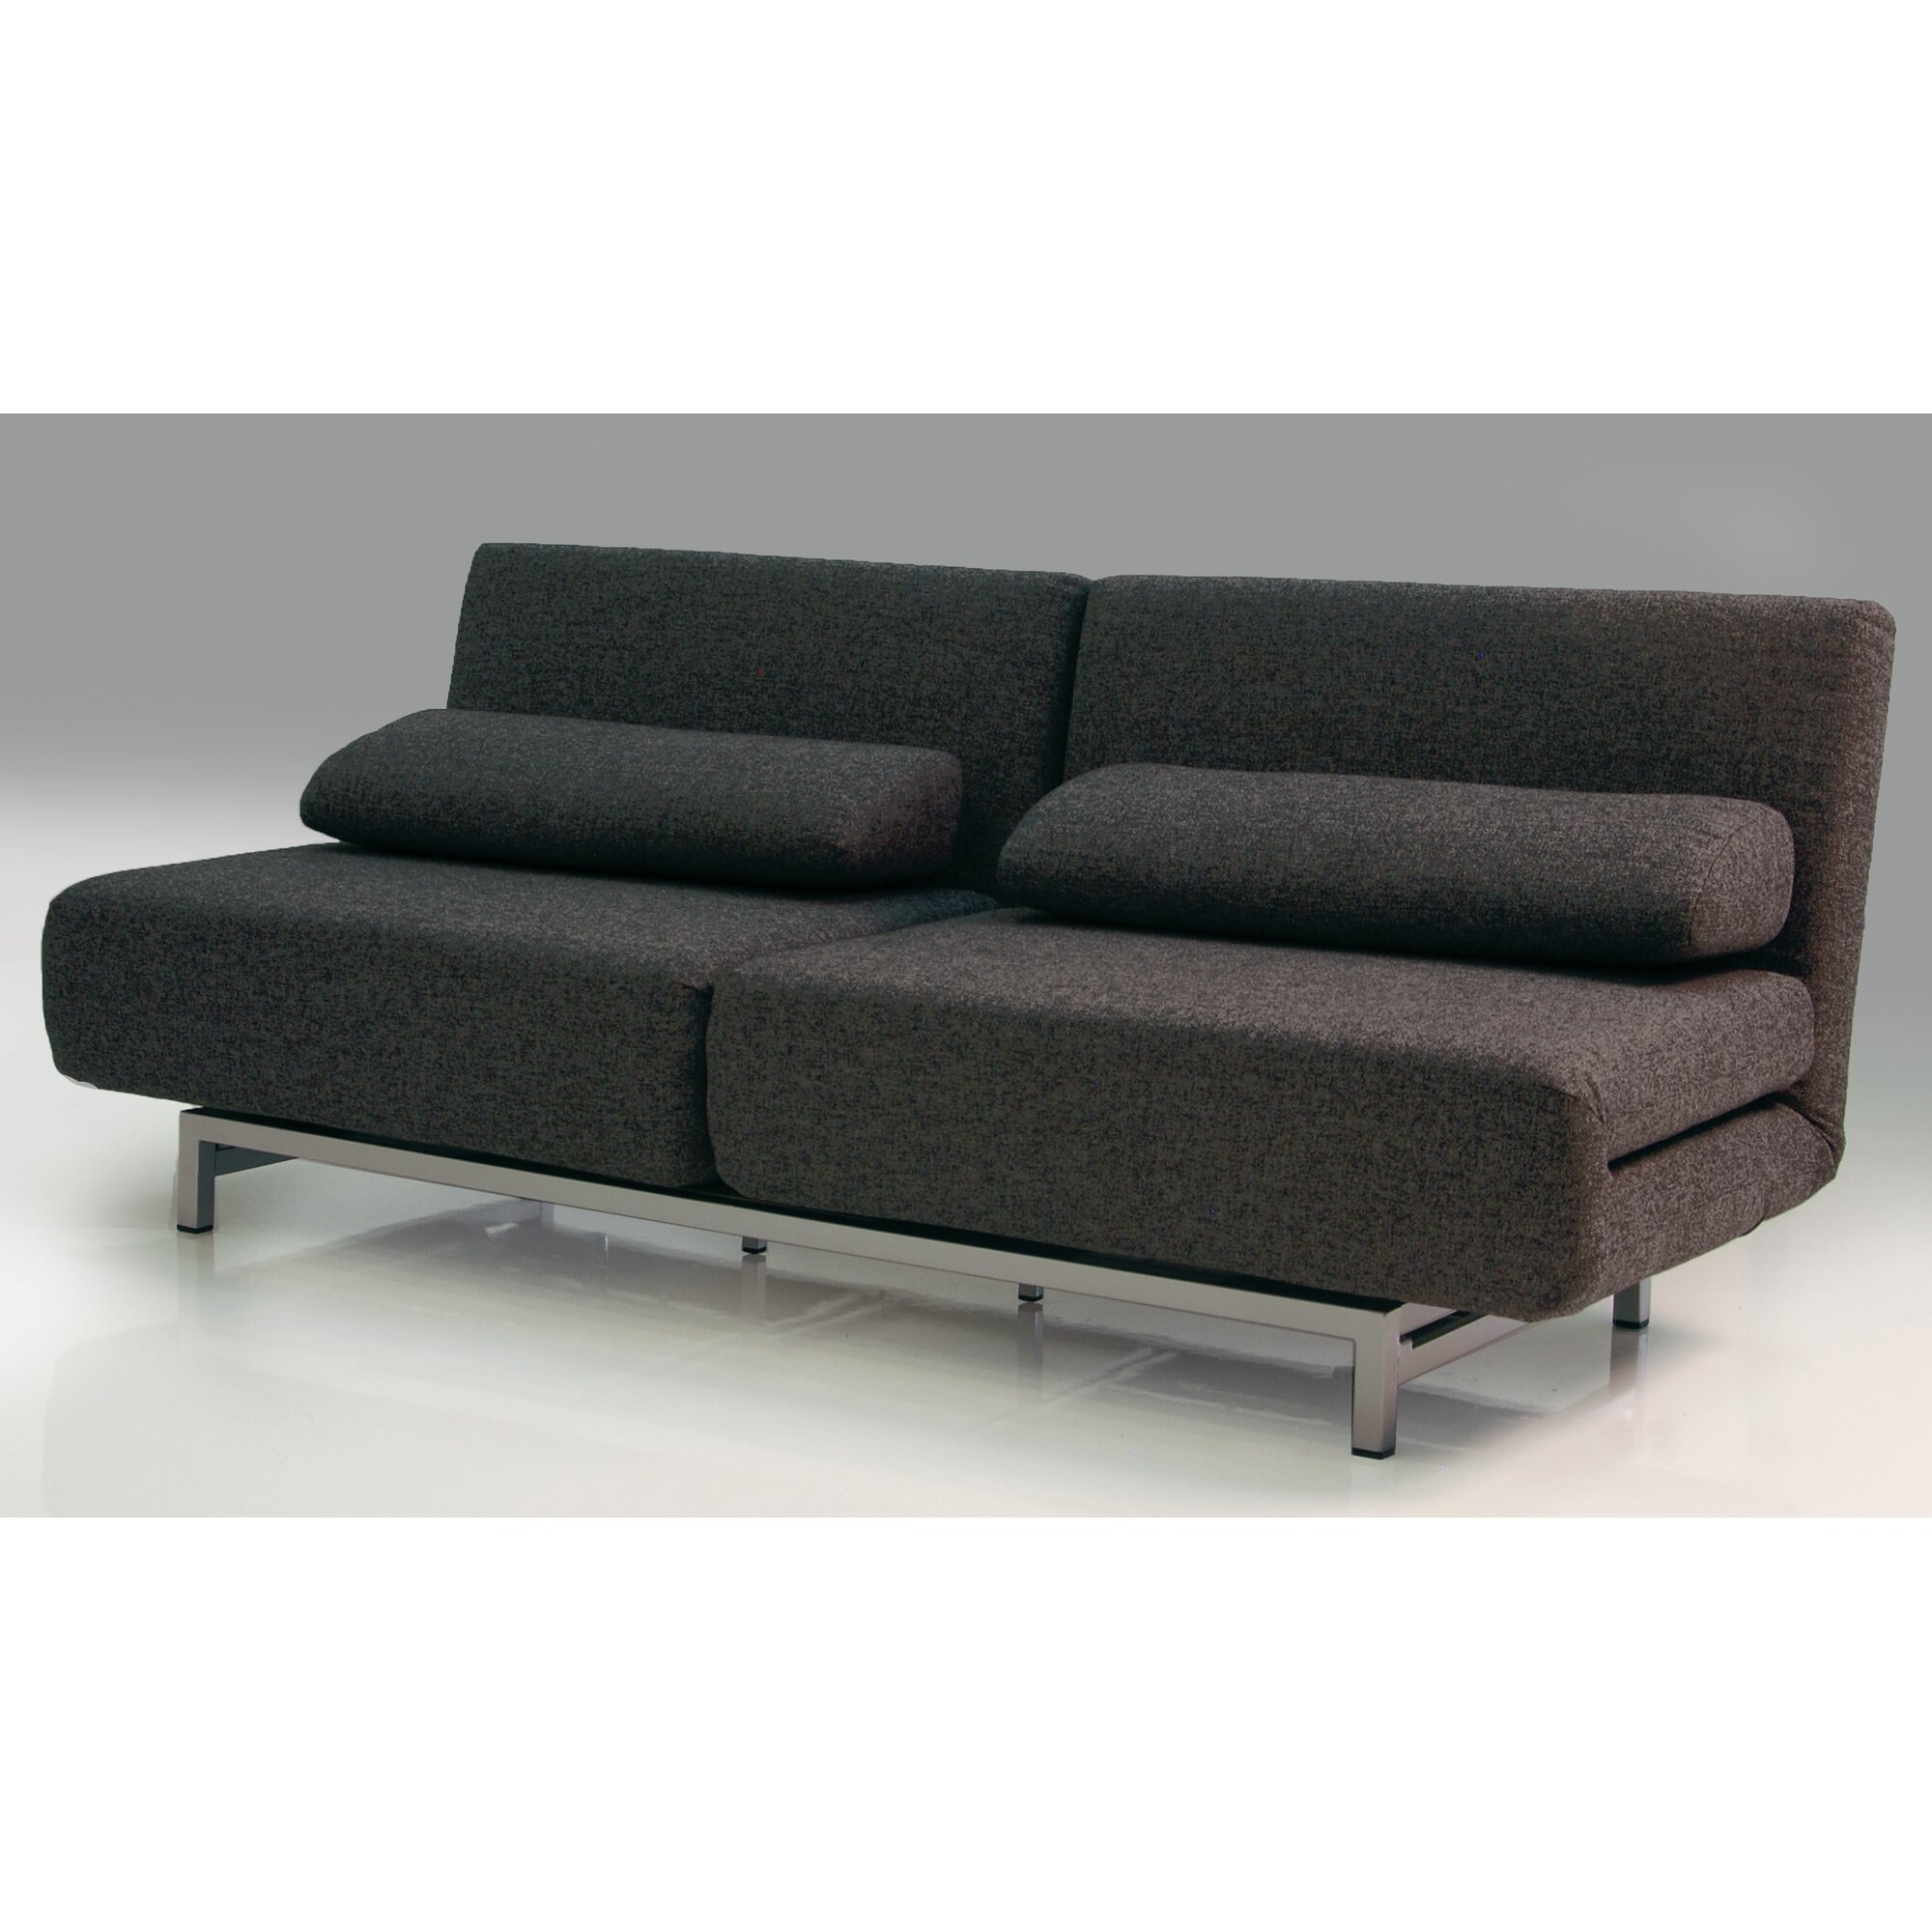 double sleeper sofa bed